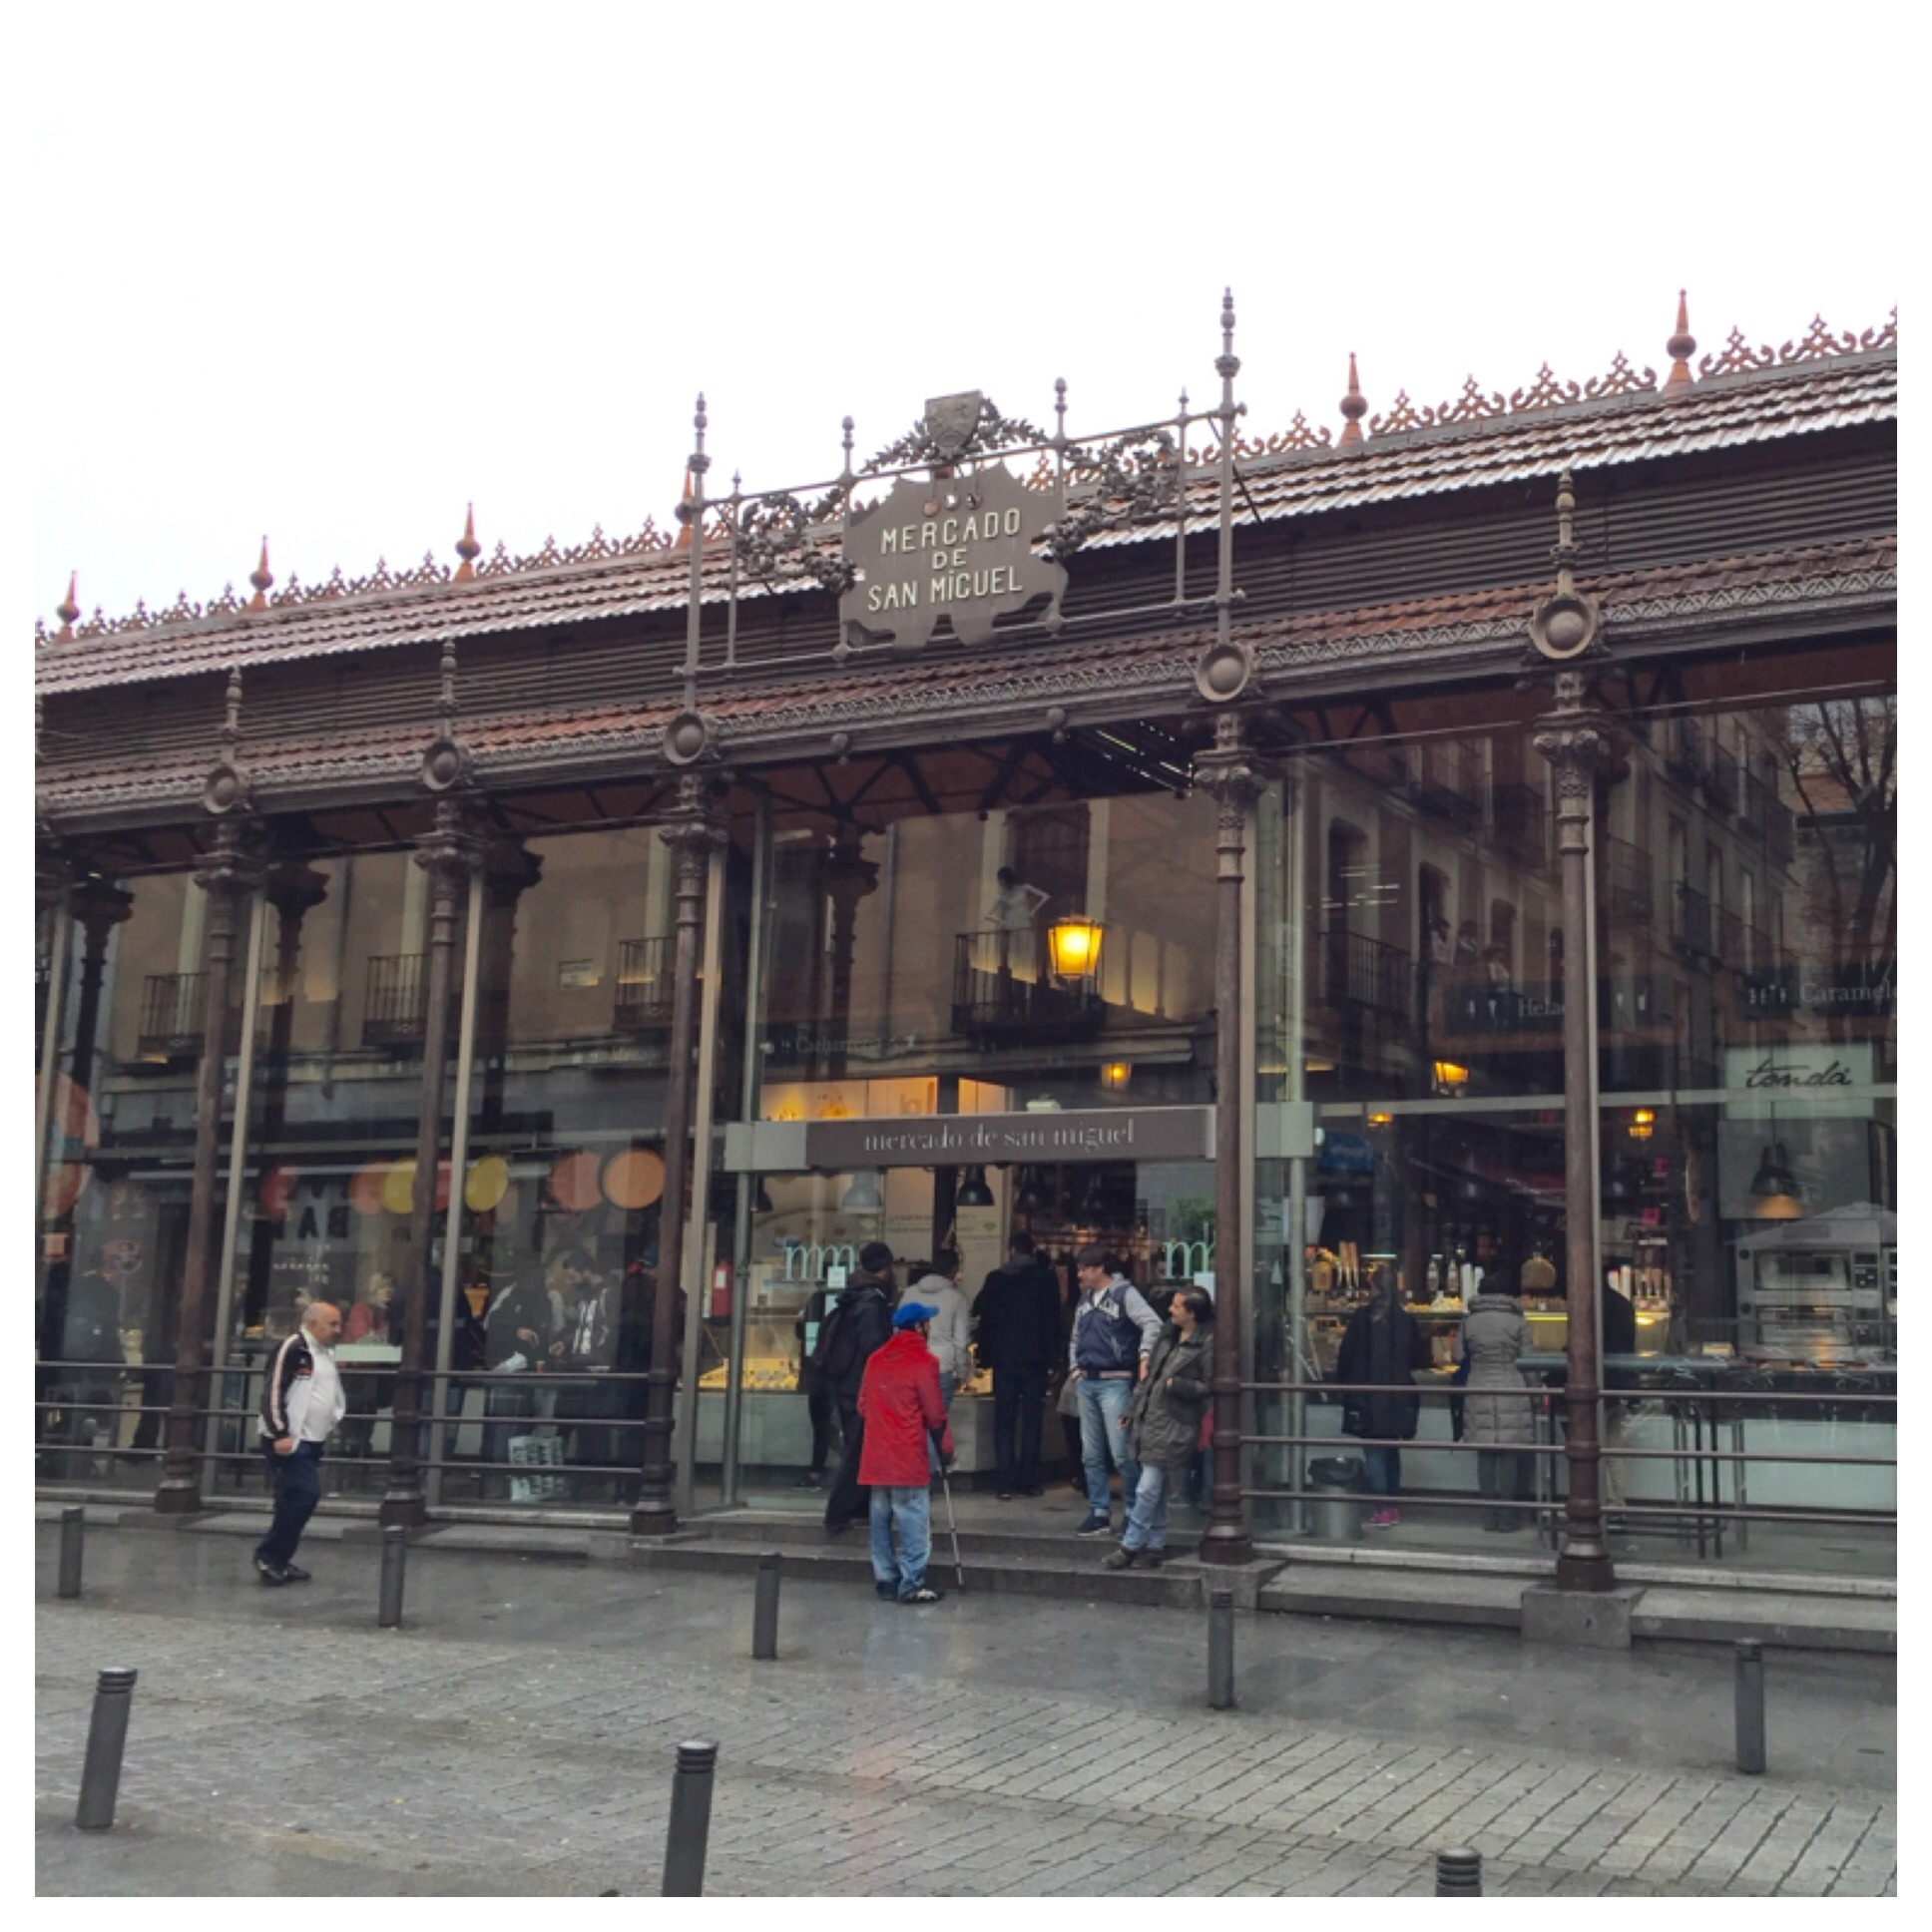 Mercado De San Miguel Market - I will most likely be back another time!!